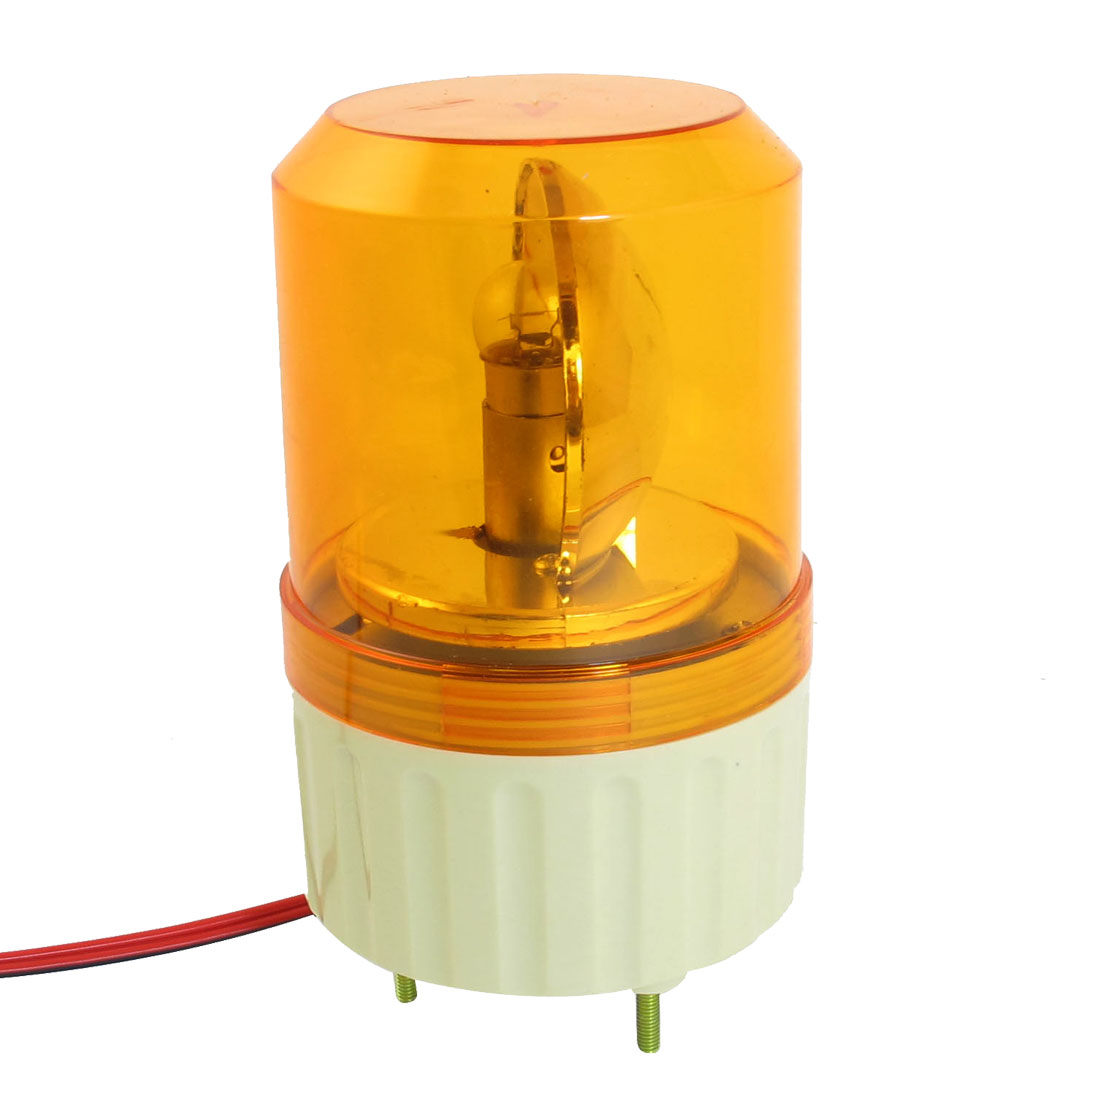 DC 24V Industrial Alarm System Rotating Warning Light Lamp Orange